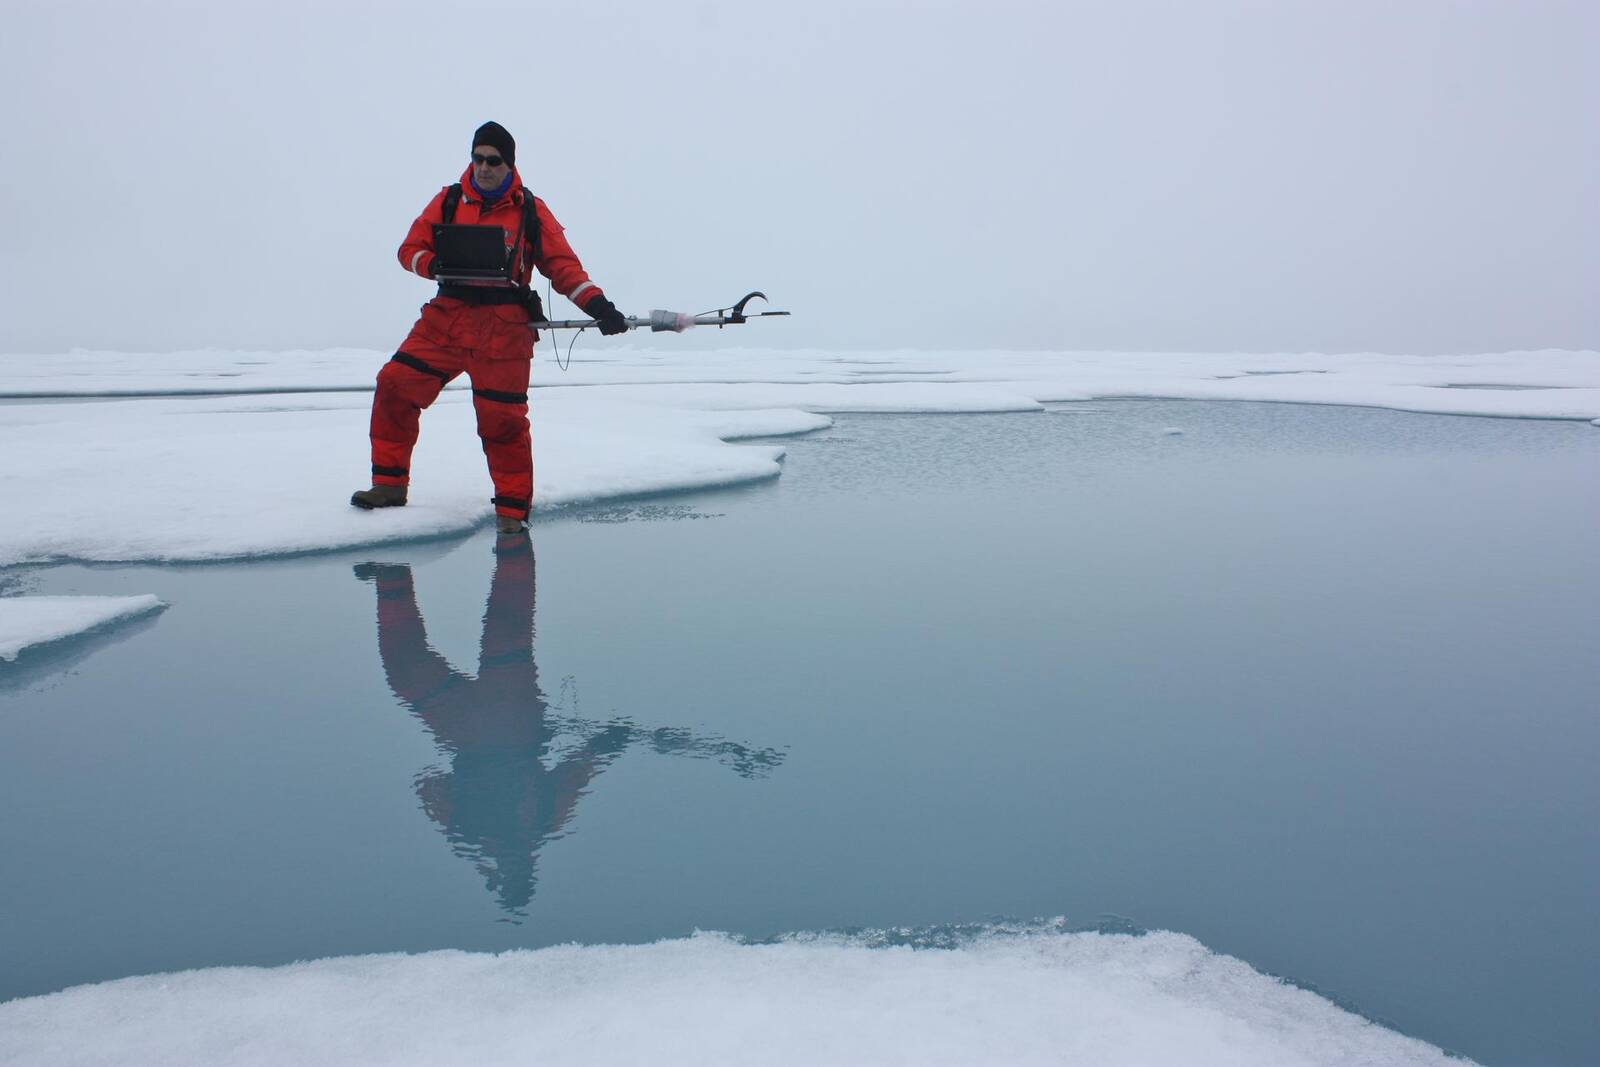 A researcher uses a spectroradiometer to measure the amount of sunlight reflected from the surface of ice and melt ponds in the Chukchi Sea. Credit: NASA/Kathryn Hansen